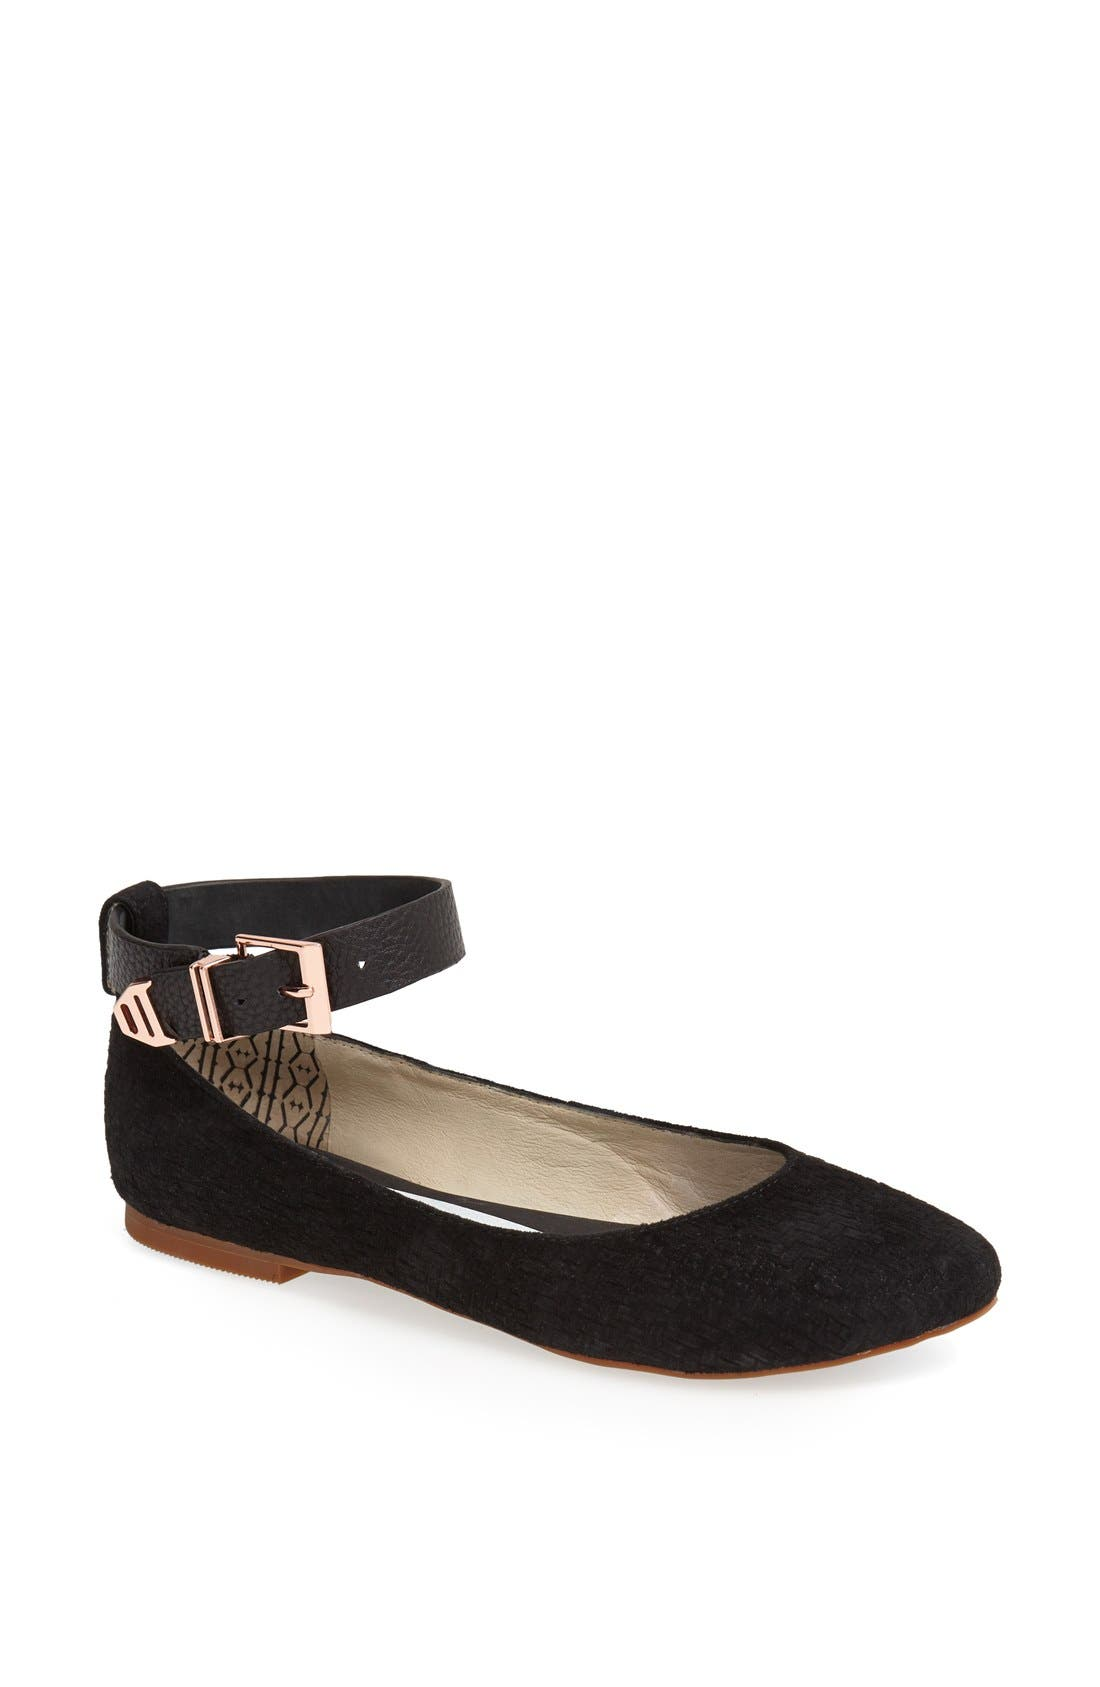 Alternate Image 1 Selected - Matt Bernson 'Major' Ankle Strap Flat